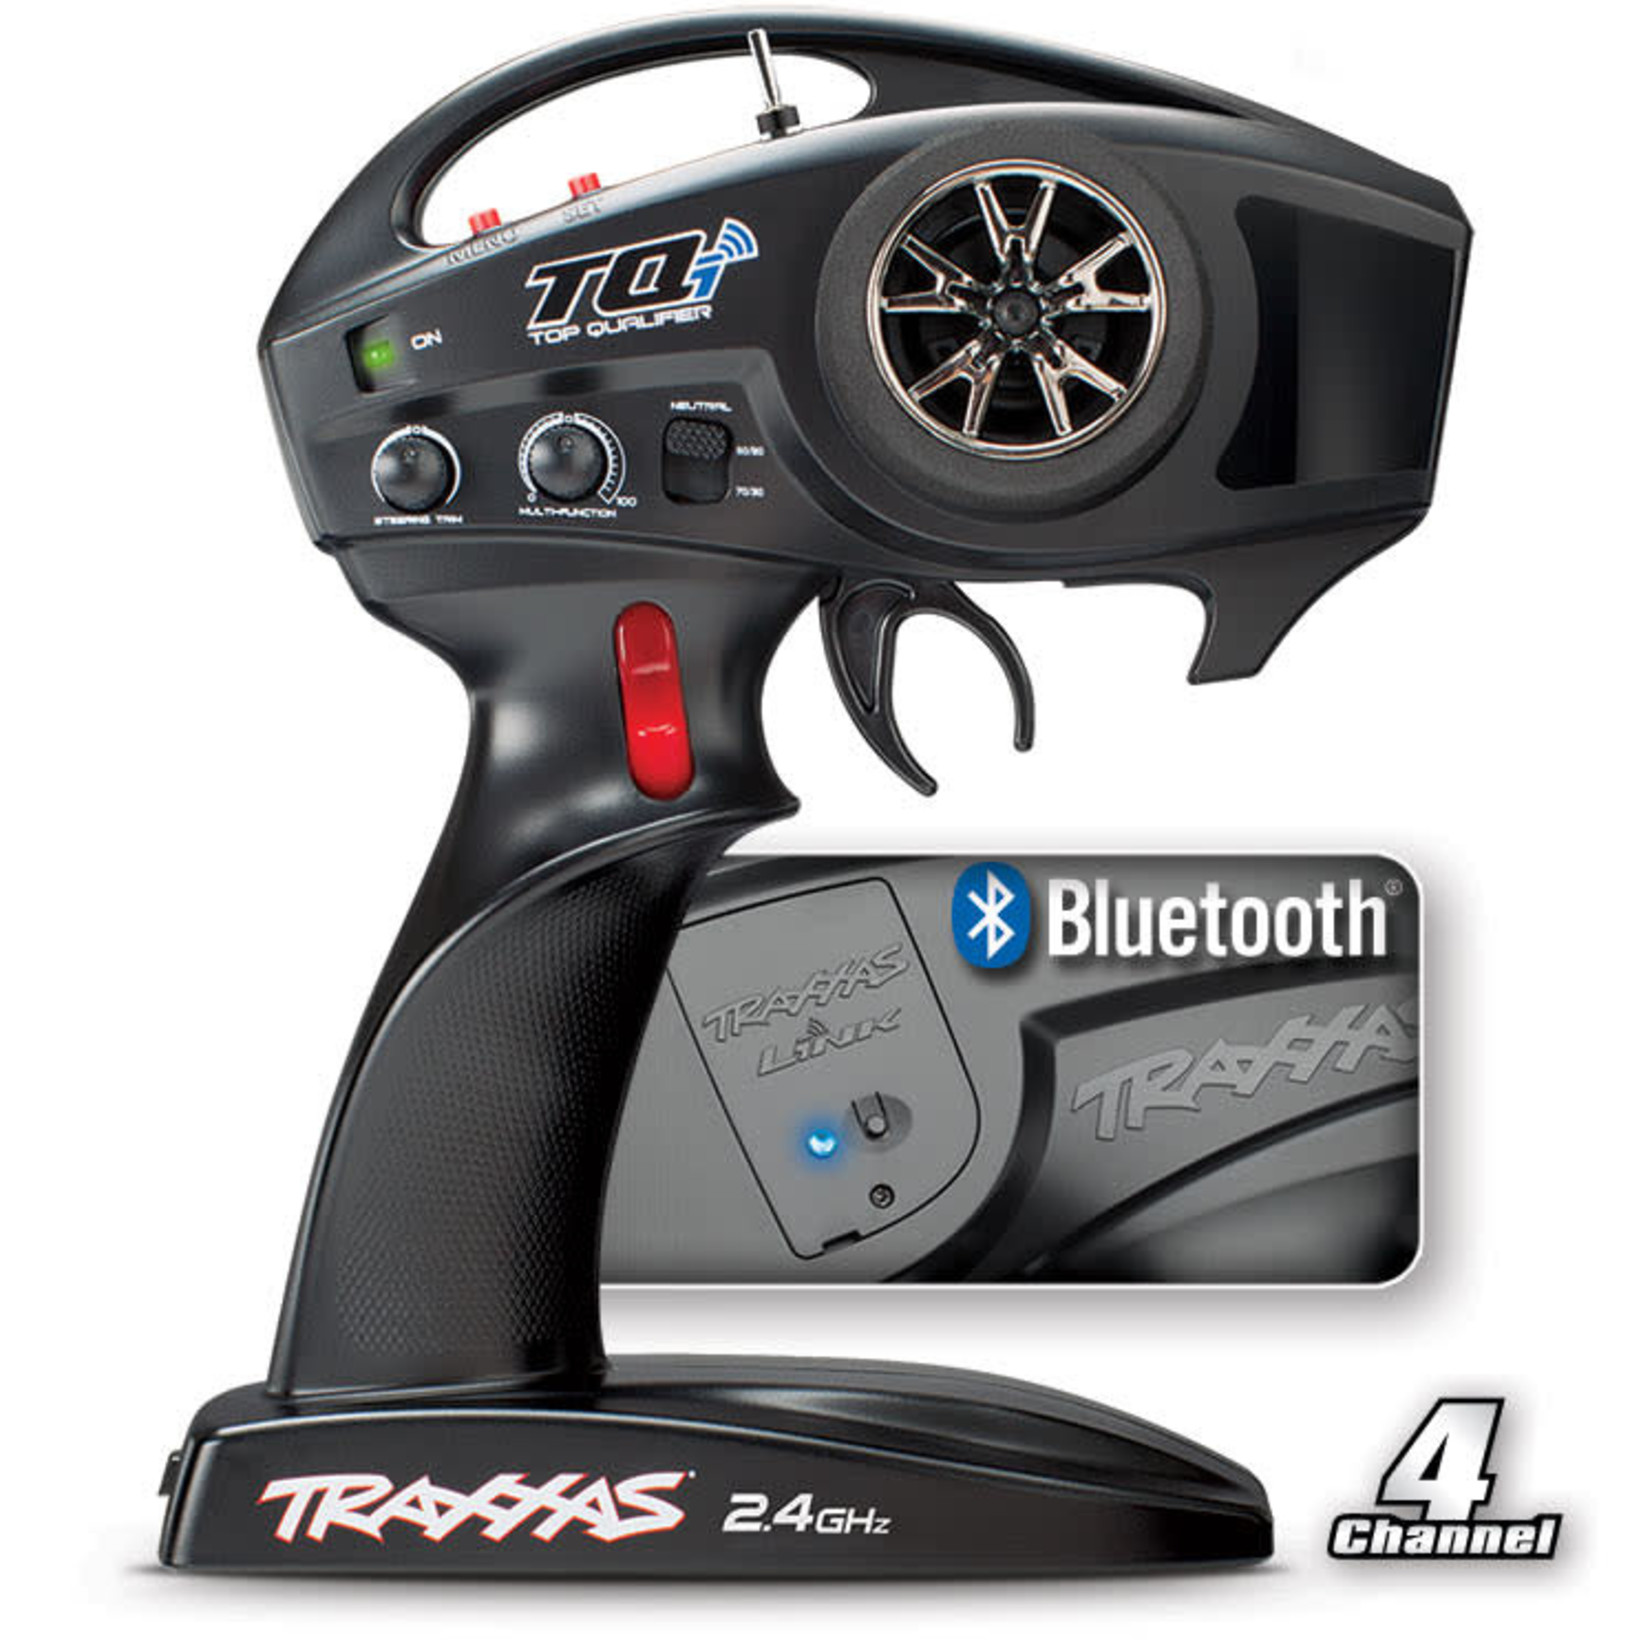 Traxxas TRA6507R Traxxas TQi 2.4 Ghz High Output Radio System, 4-Channel with Traxxas Link Wireless Module, TSM (4-Ch Transmitter, 5-Ch Micro Receiver)